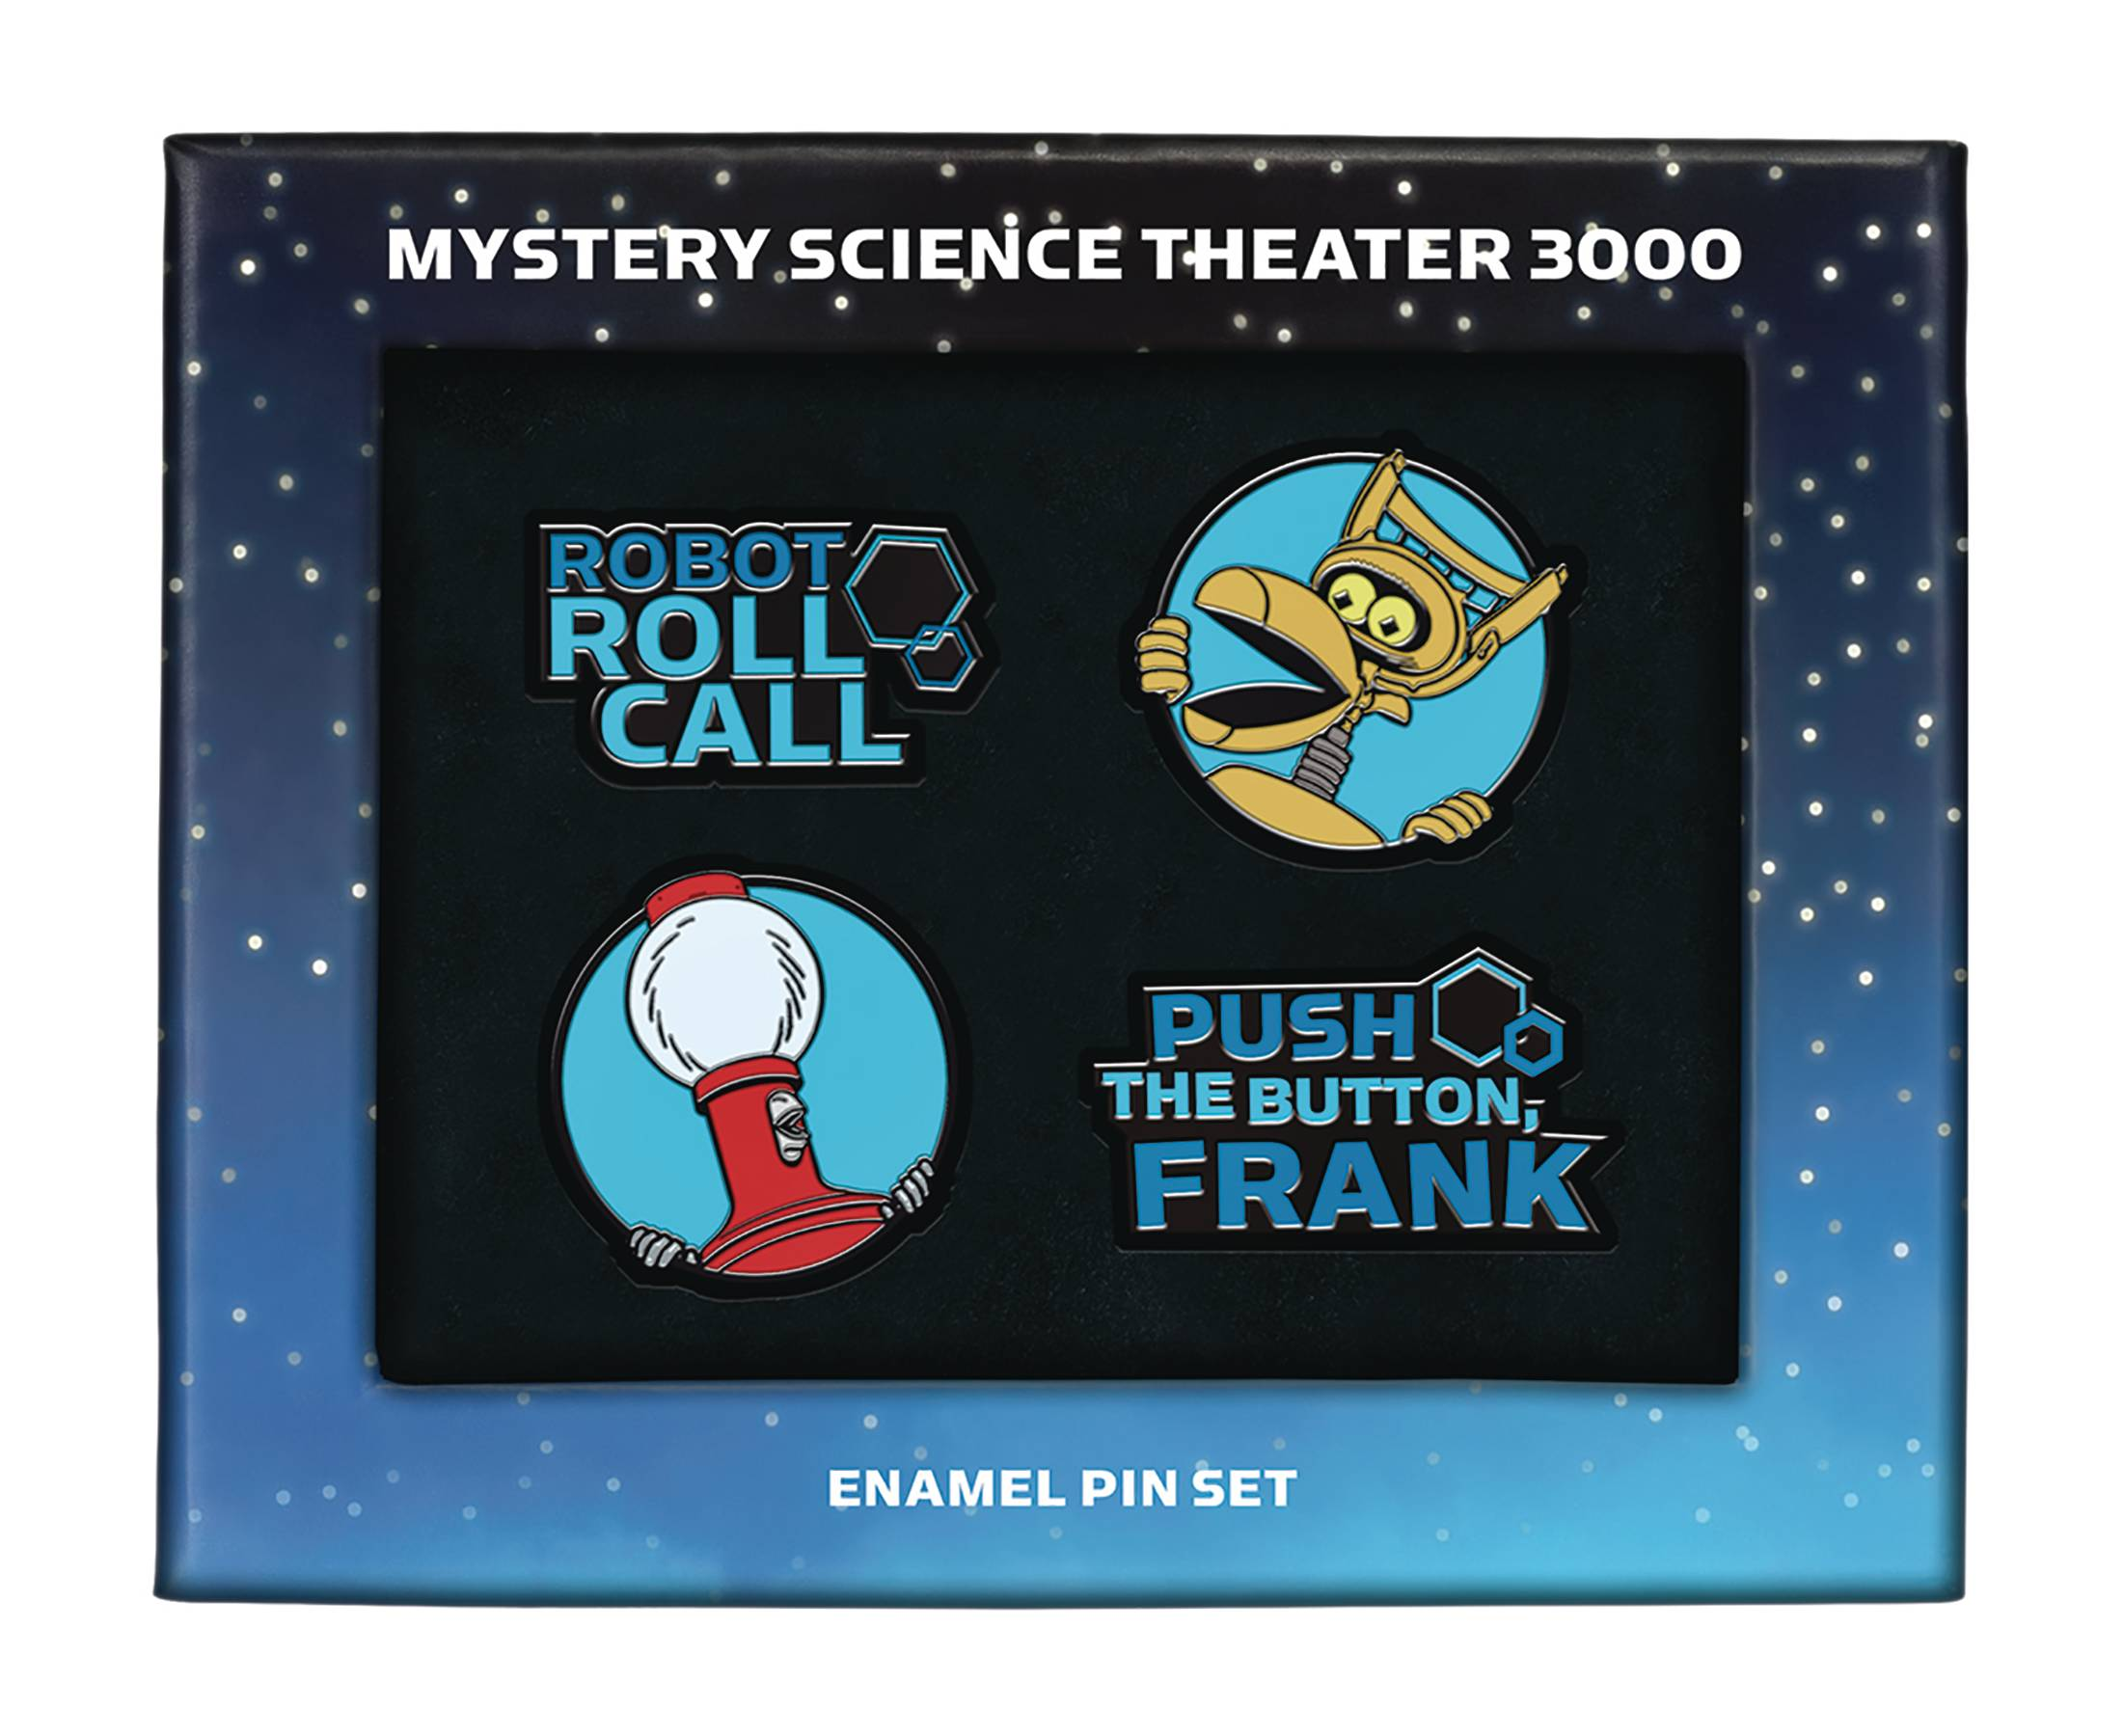 MYSTERY SCIENCE THEATER ENAMEL PIN SET.jpg